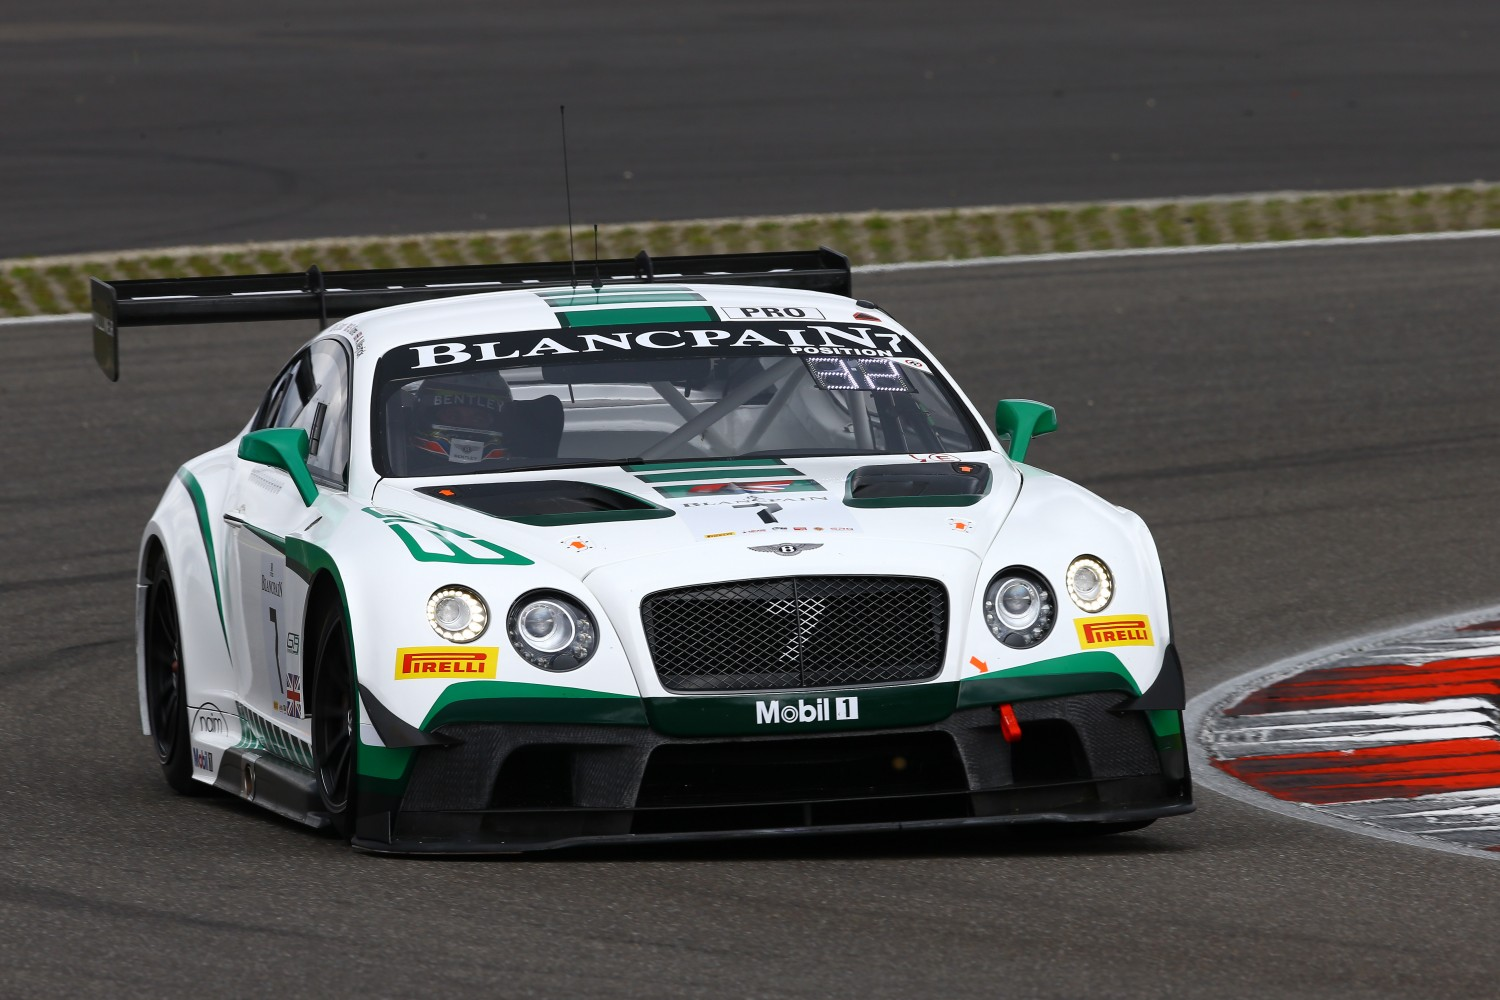 Bentley on top in Free Practice session